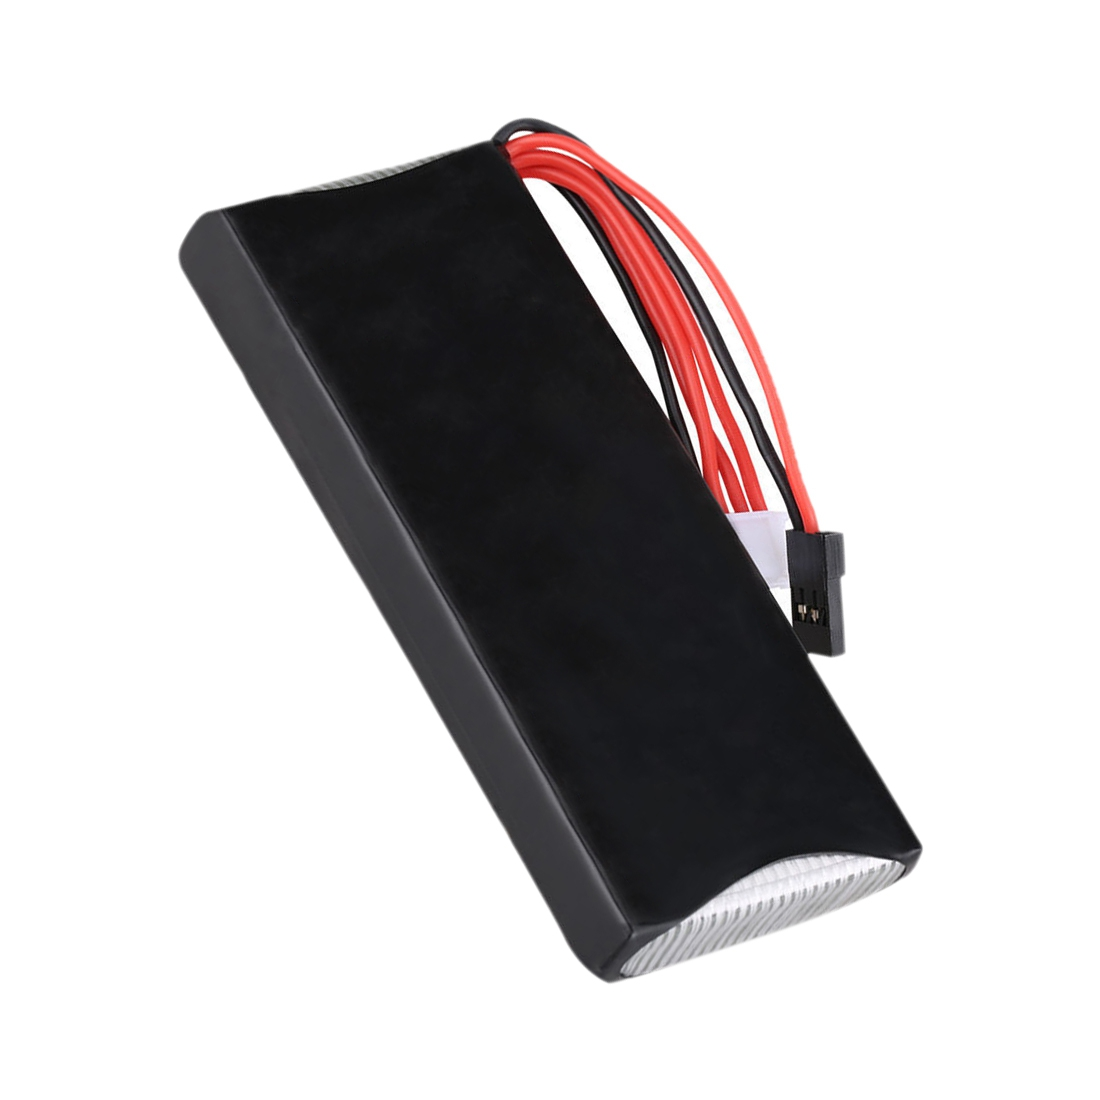 MACH 3S 11.1V 2200mAh 8C Li-Po Battery 3PK Transmitter for RC Airplane Boot maxel g 99 1005250348